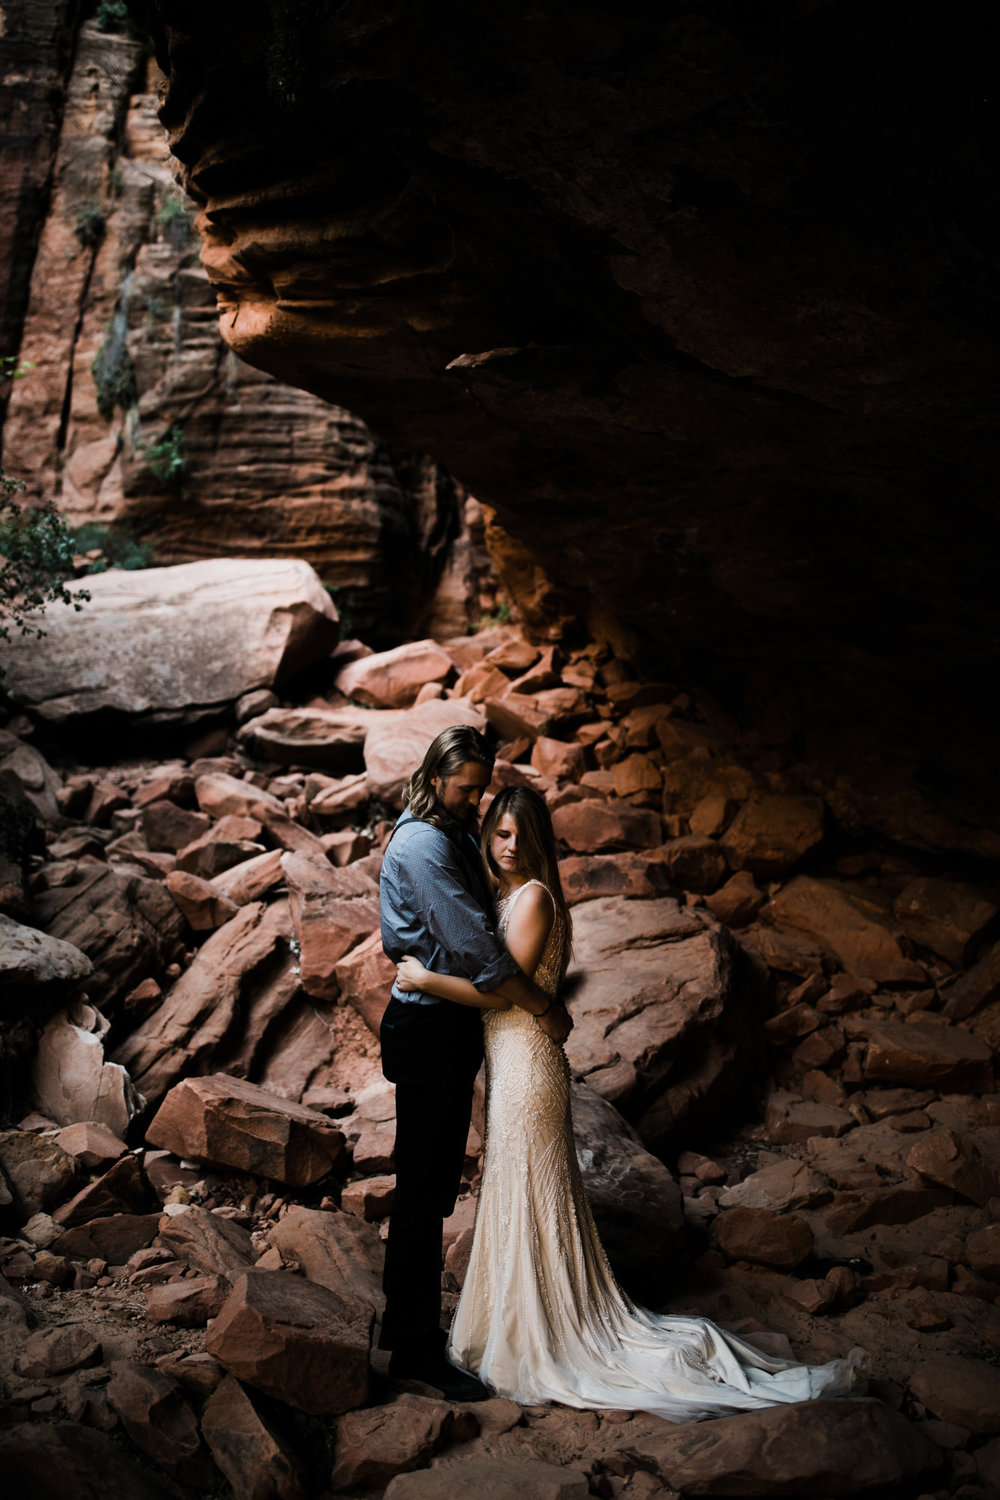 las vegas elopement at the neon museum | bhldn bride | sunset wedding portraits at zion national park | utah adventure wedding photographer | the hearnes adventure photography | www.thehearnes.com